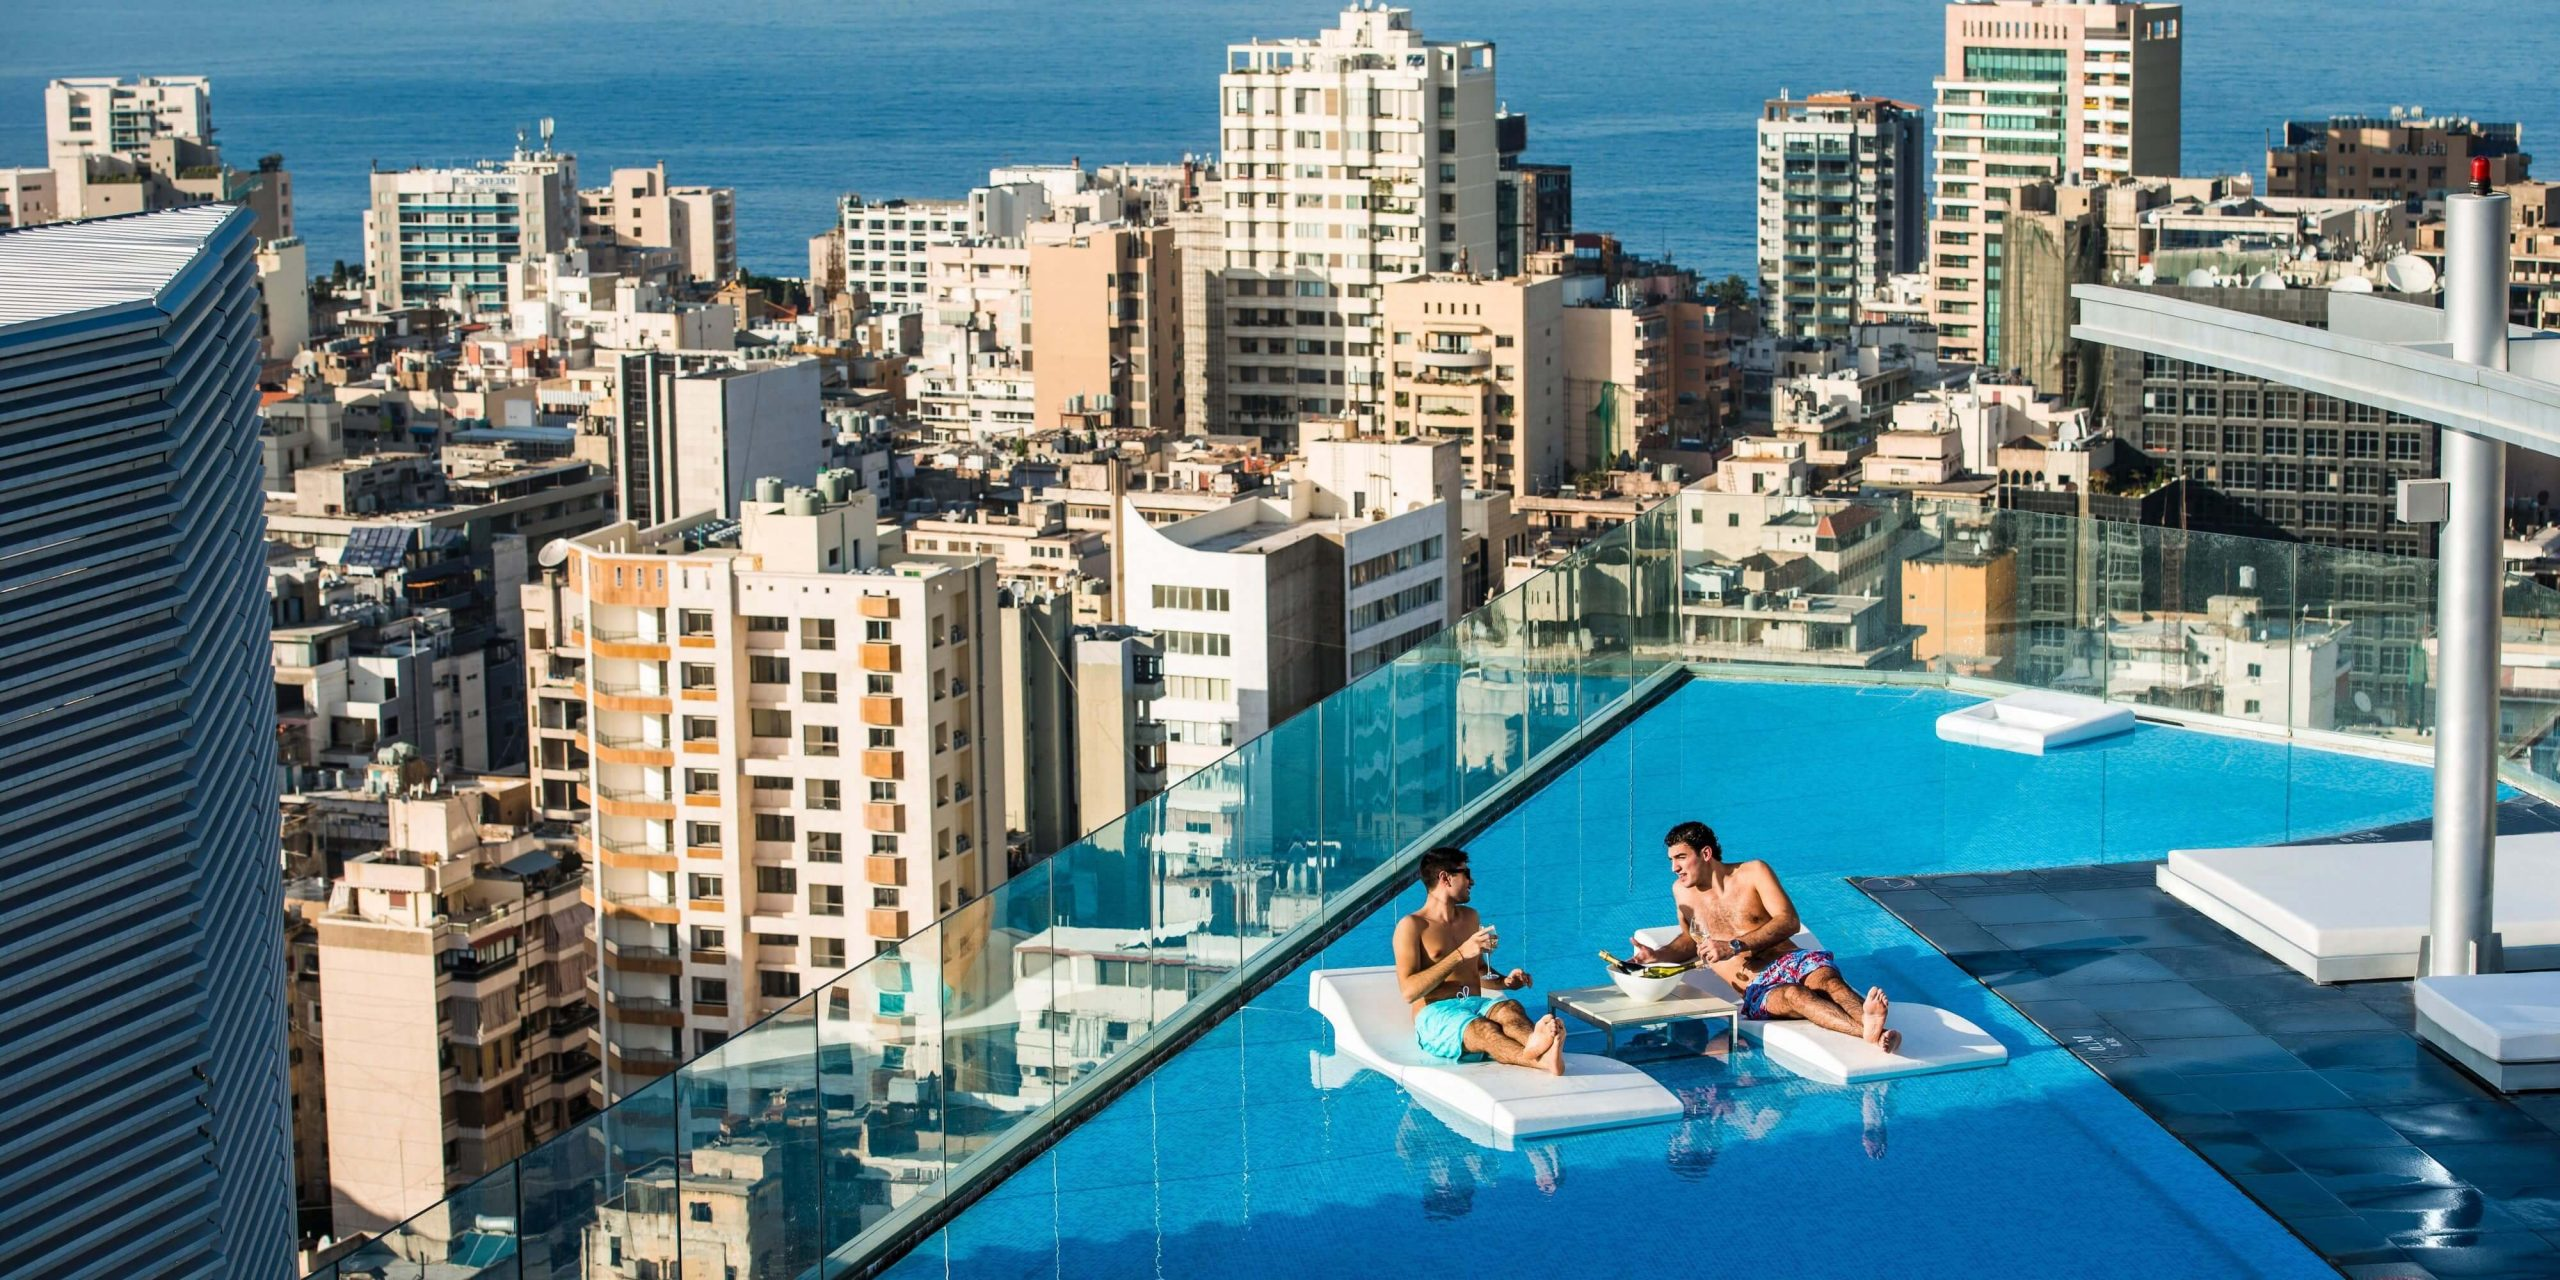 Beirut Pictures